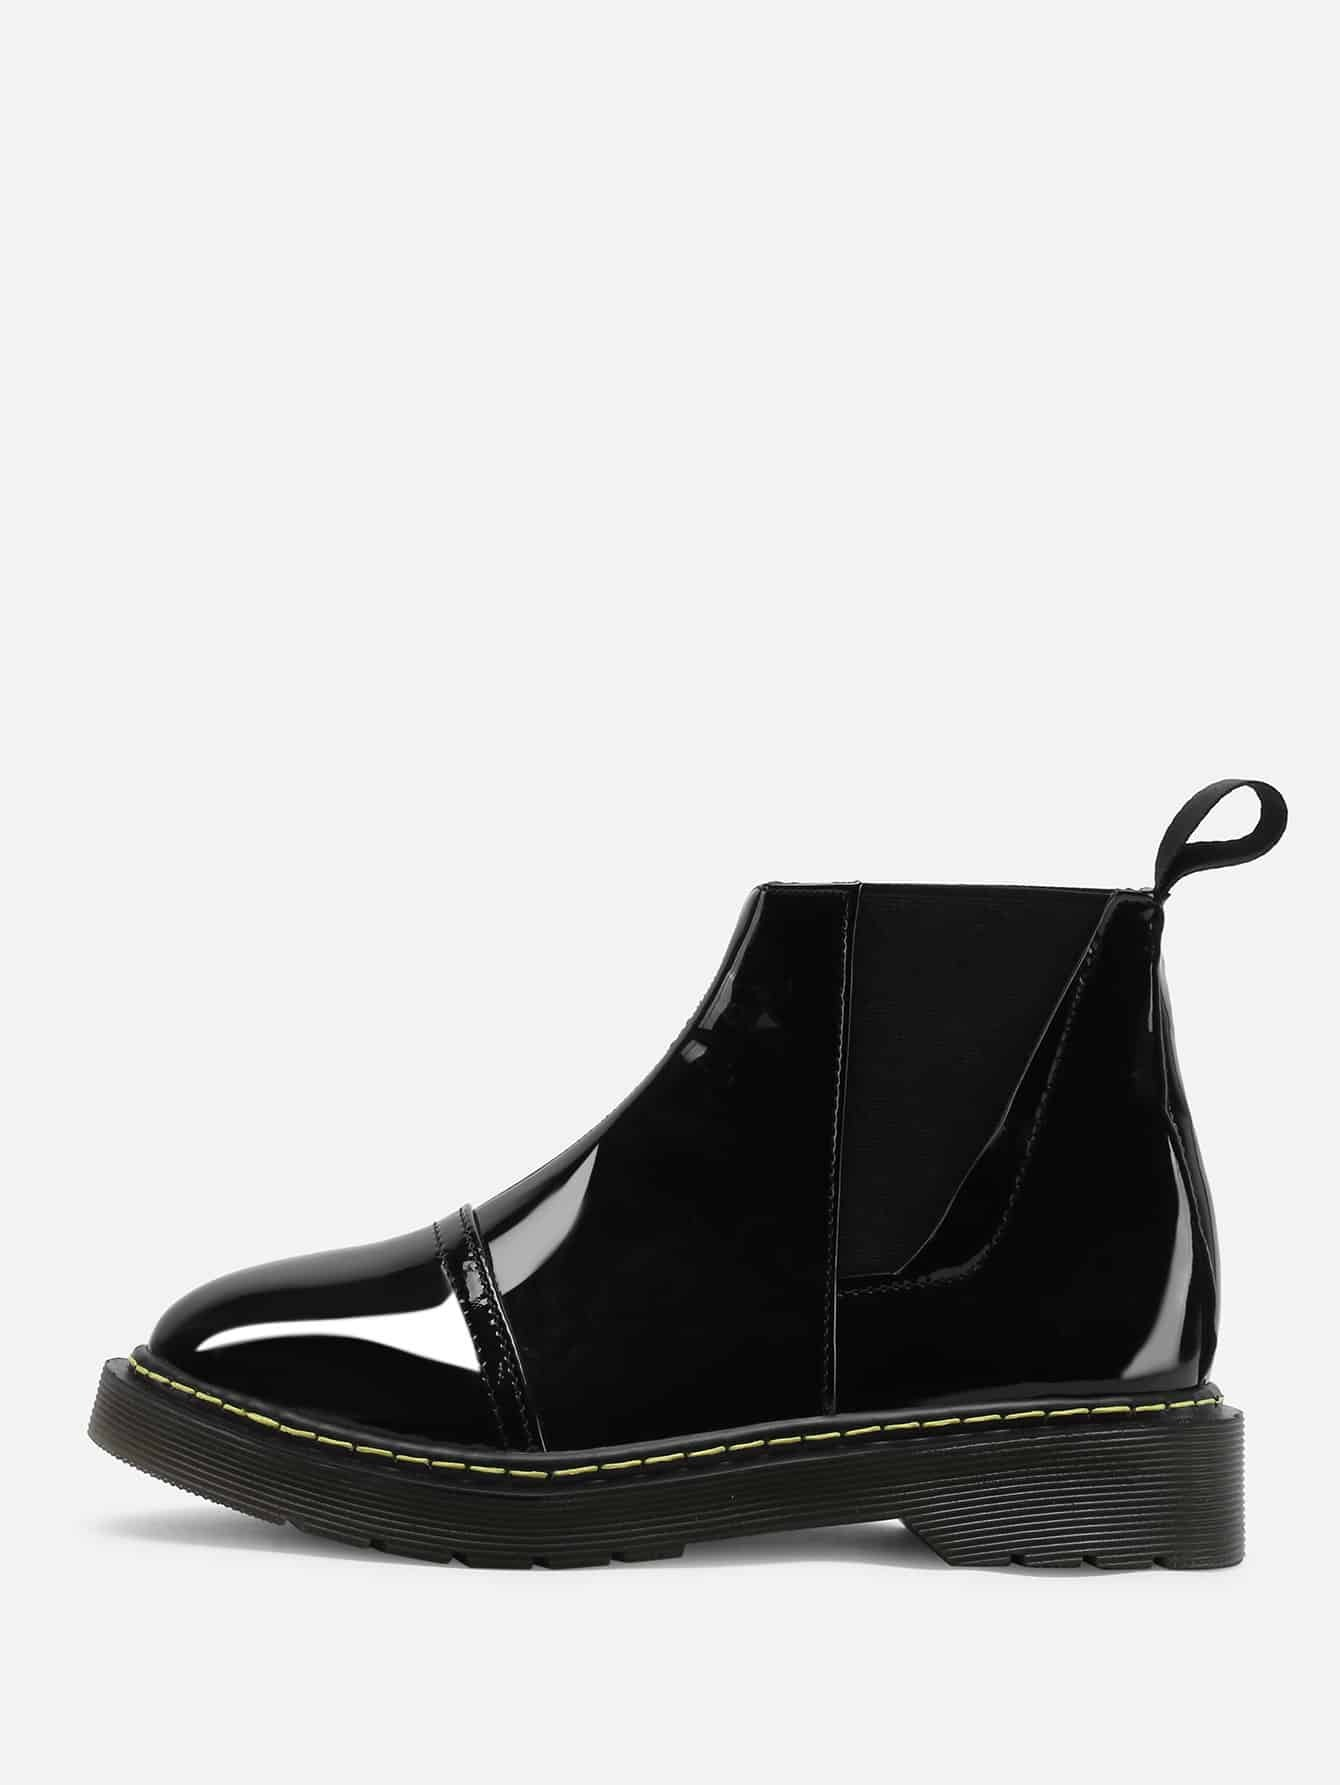 Фото Round Toe Patent Leather Ankle Boots